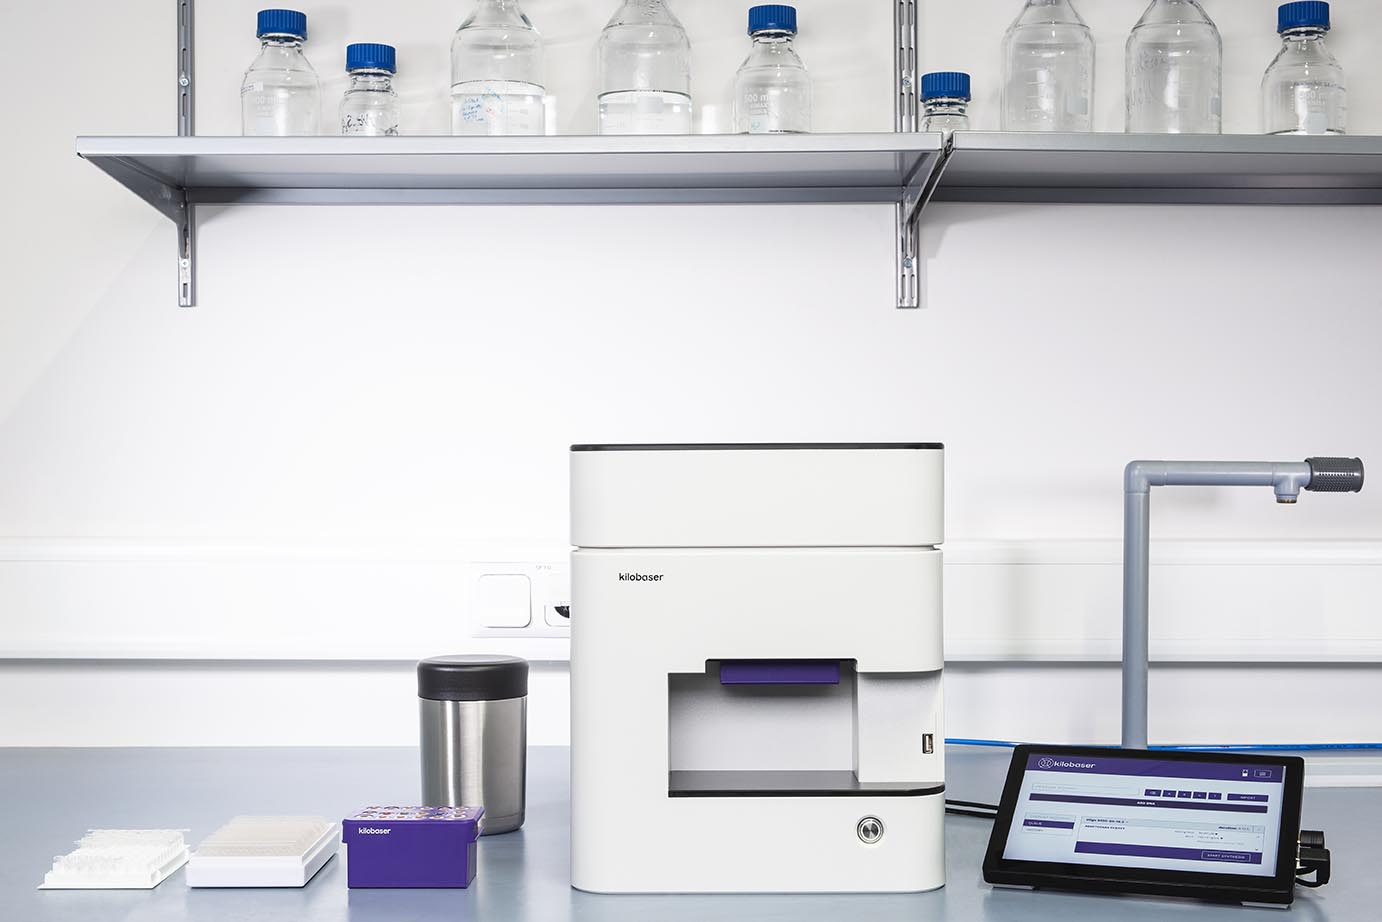 Kilobaser's DNA sequencing device on a lab bench.